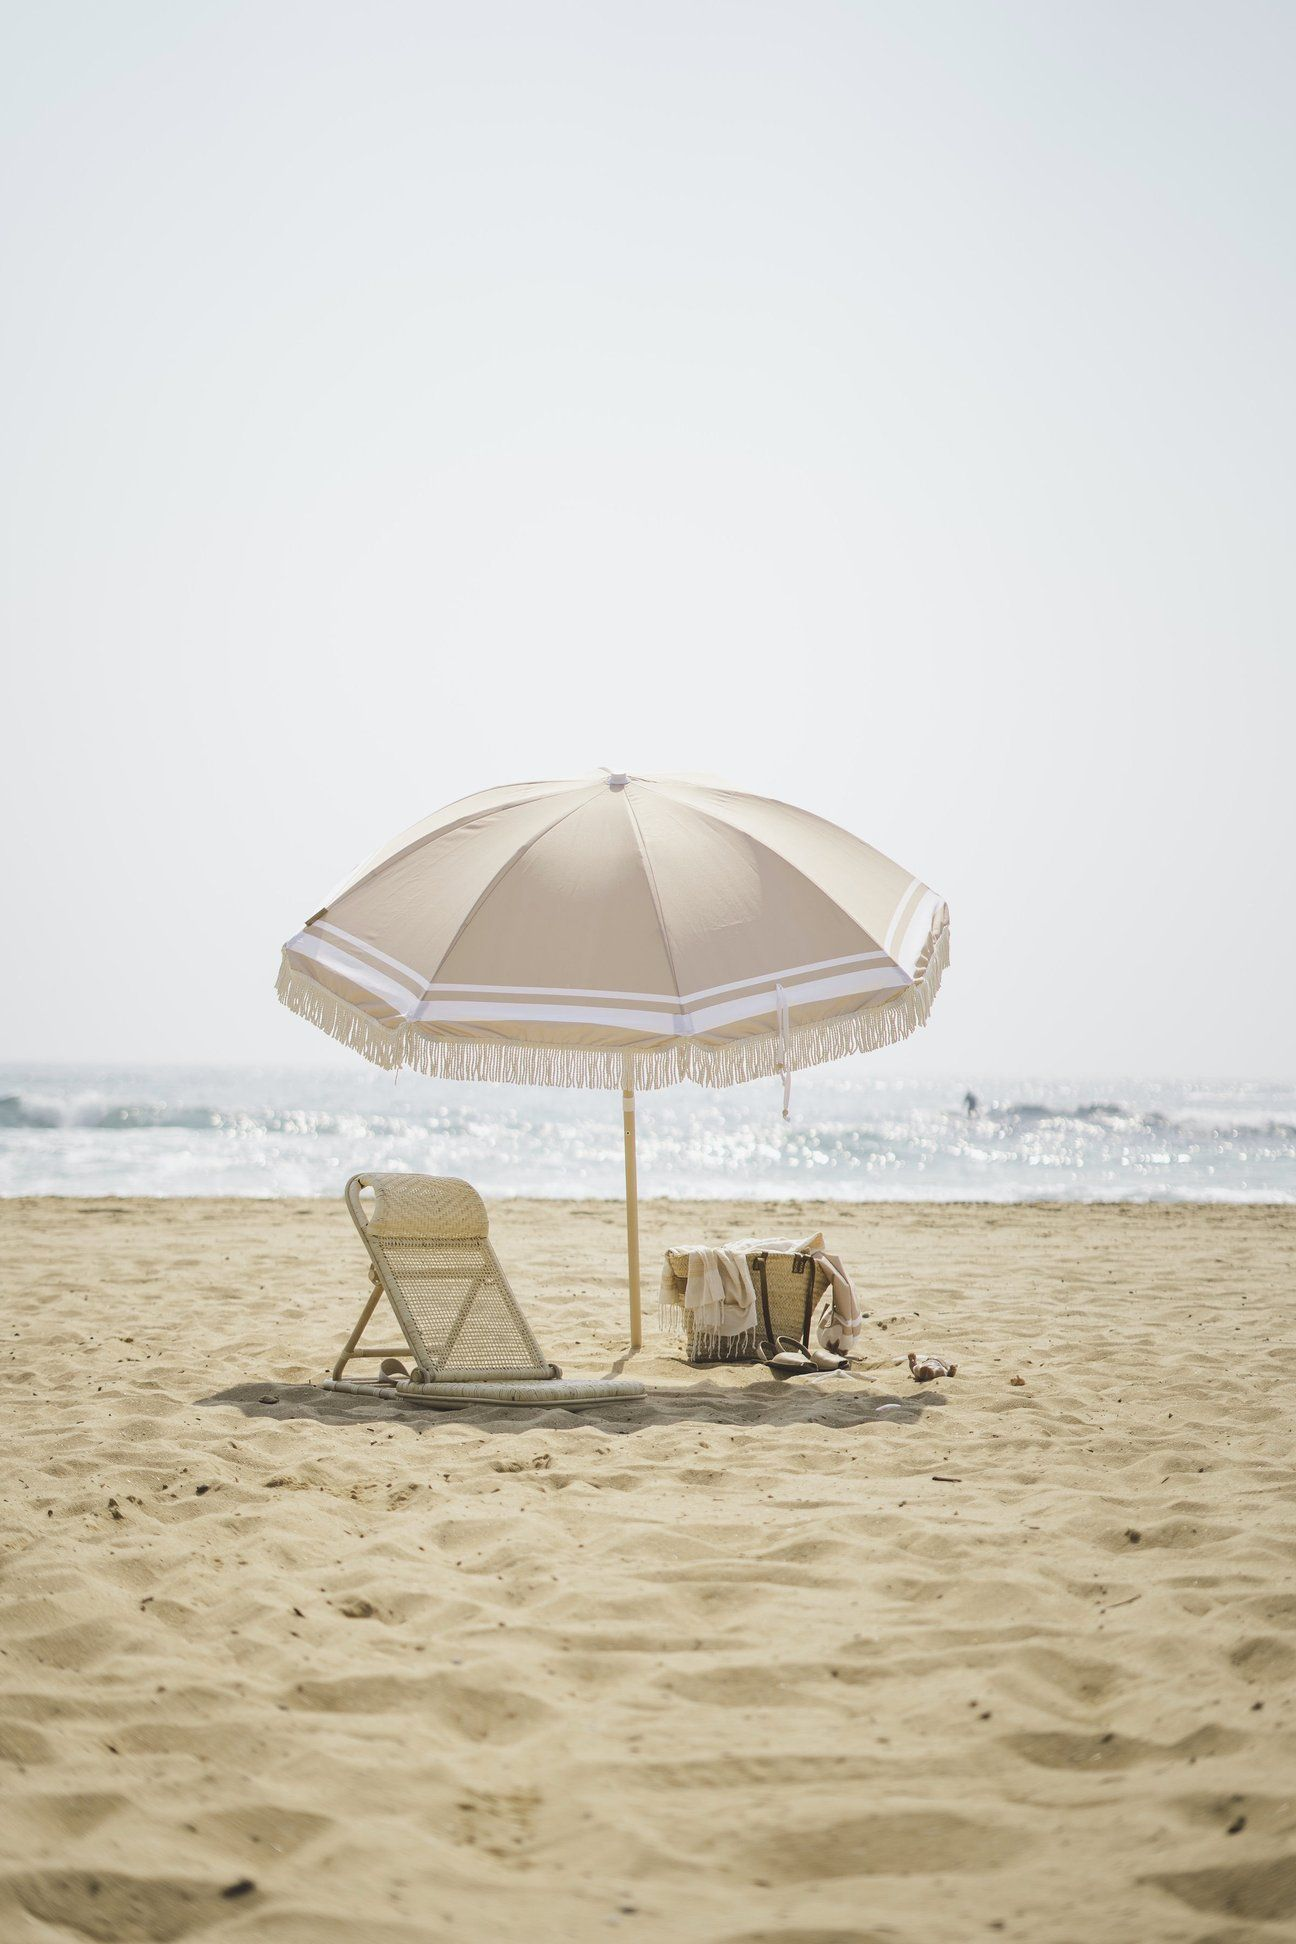 Premium Recycled Beach Umbrellas designed with